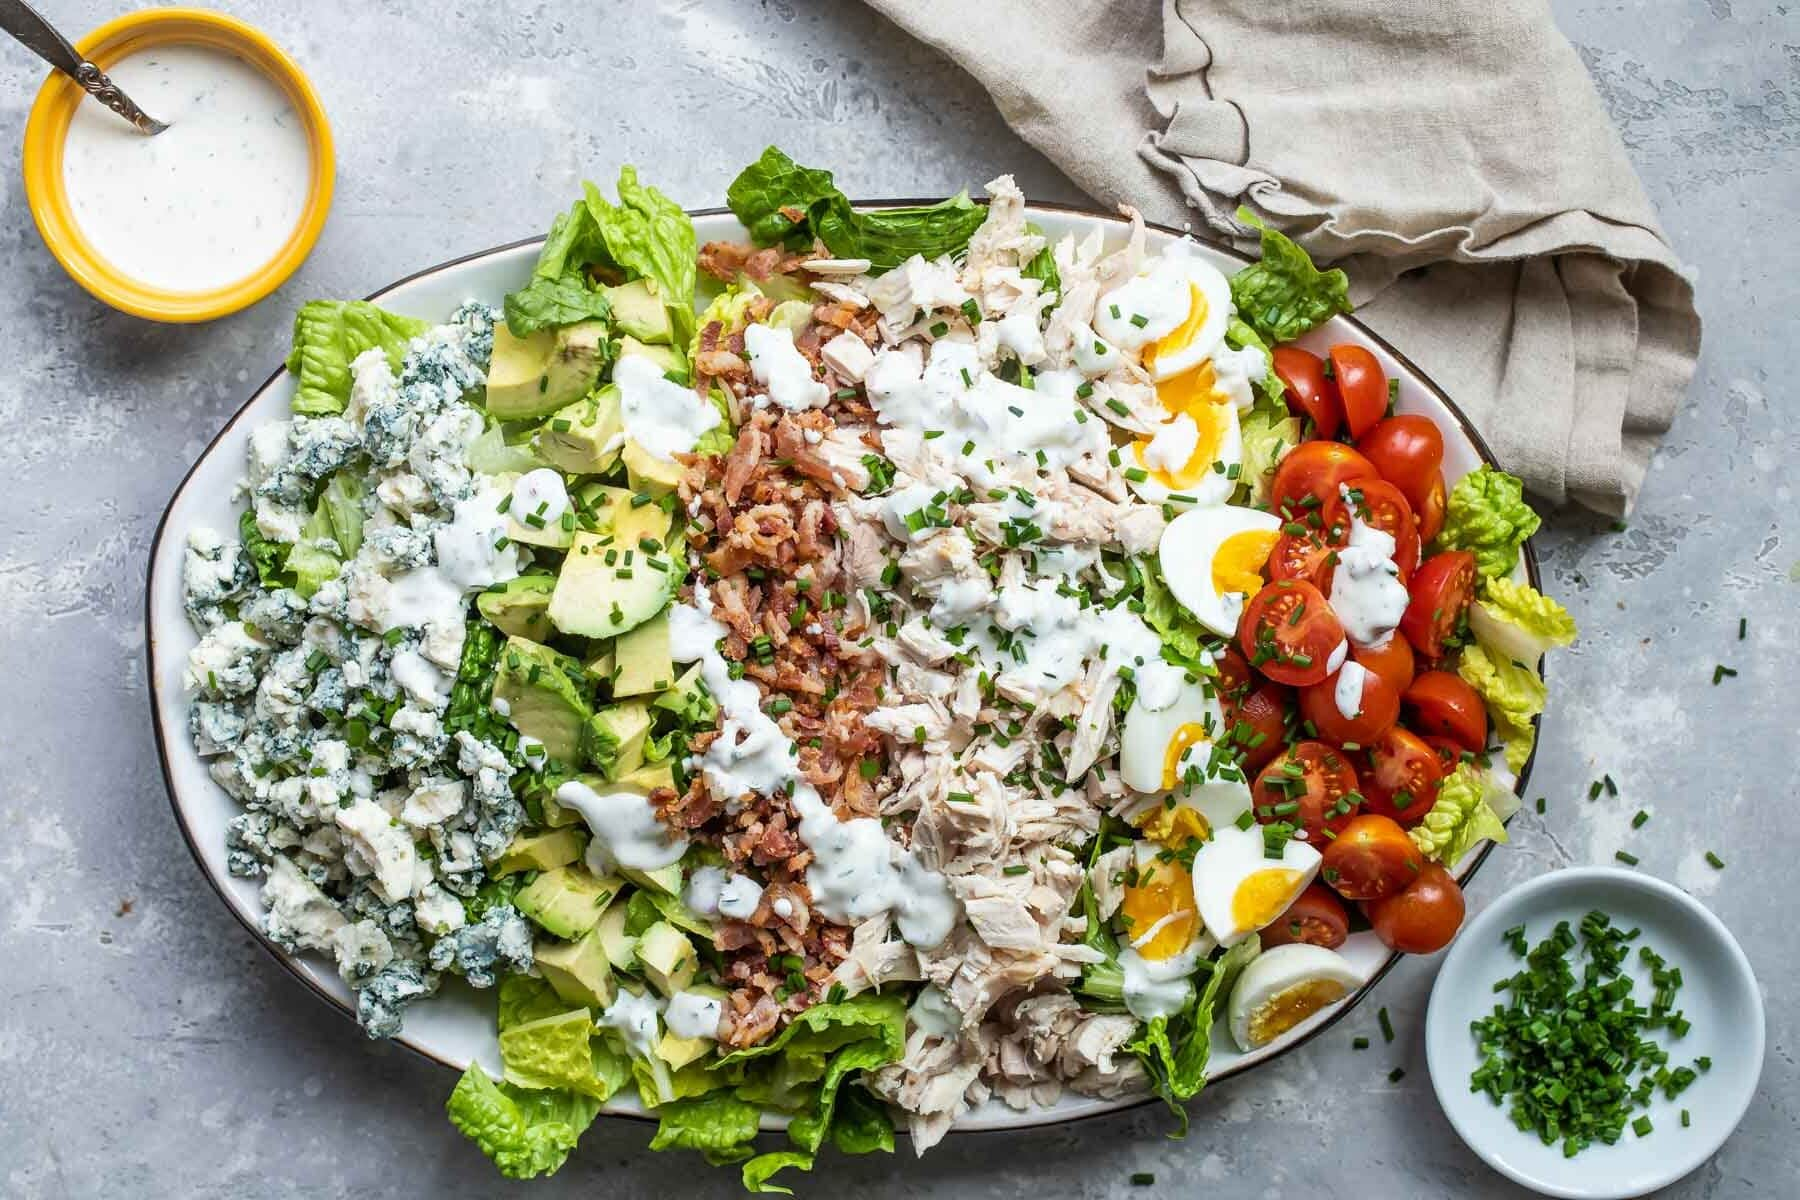 A cobb salad composed on a platter.